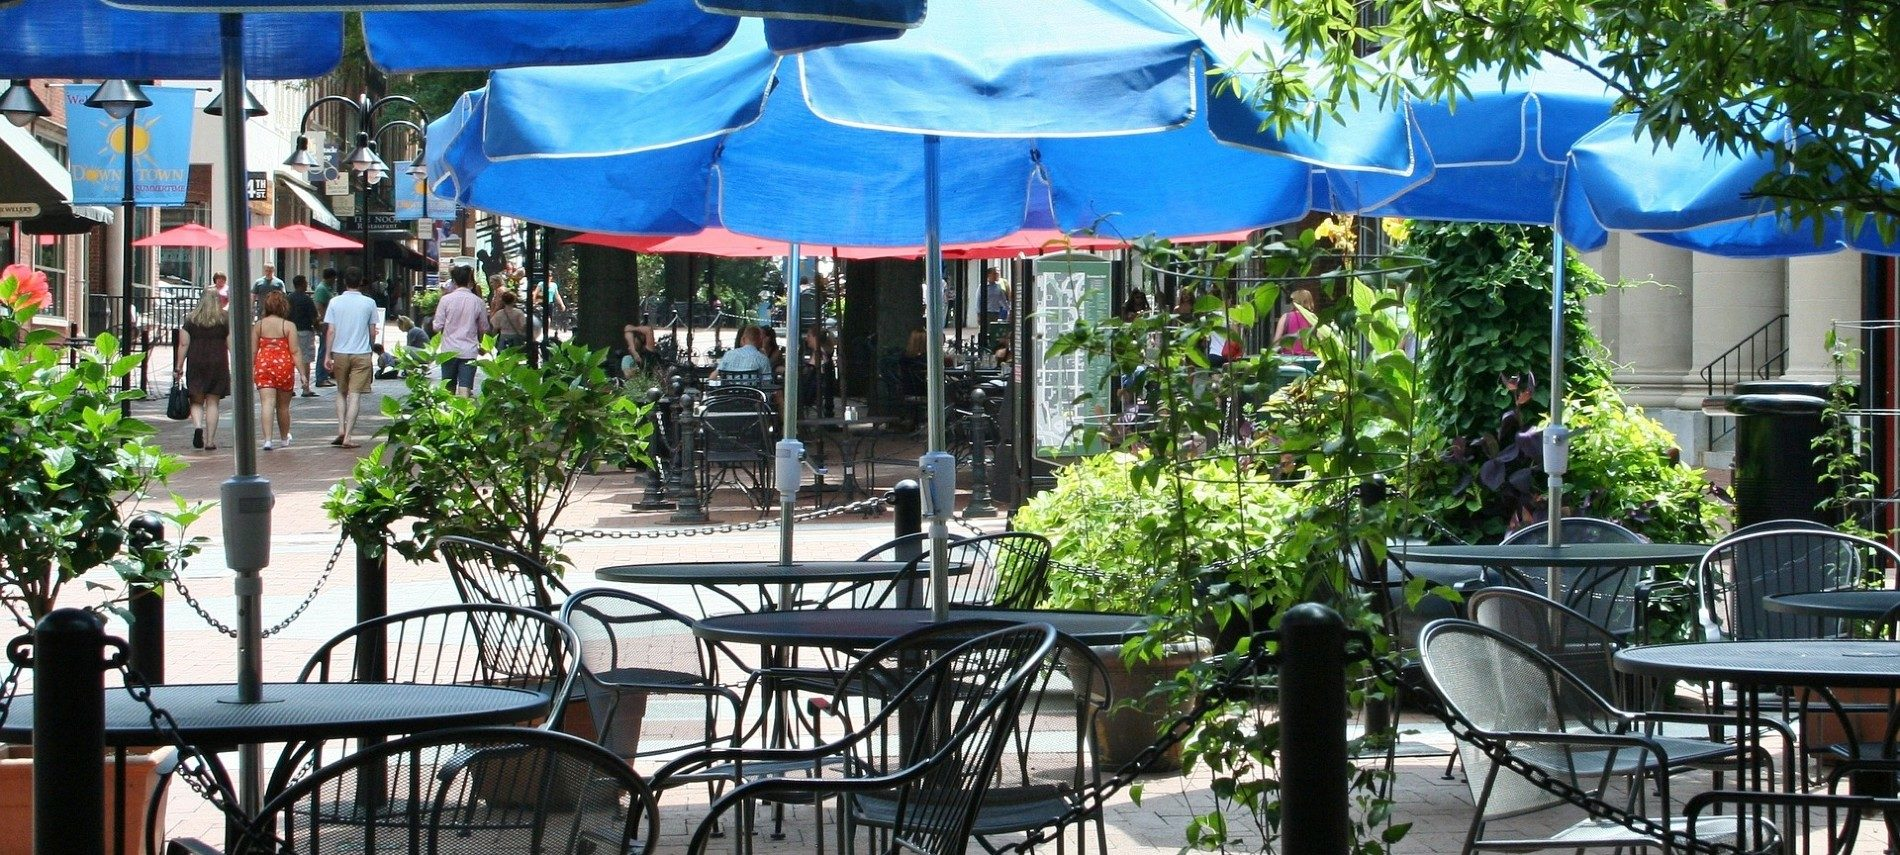 Outdoor dining area with several black tables under blue umbrellas on a street with people walking